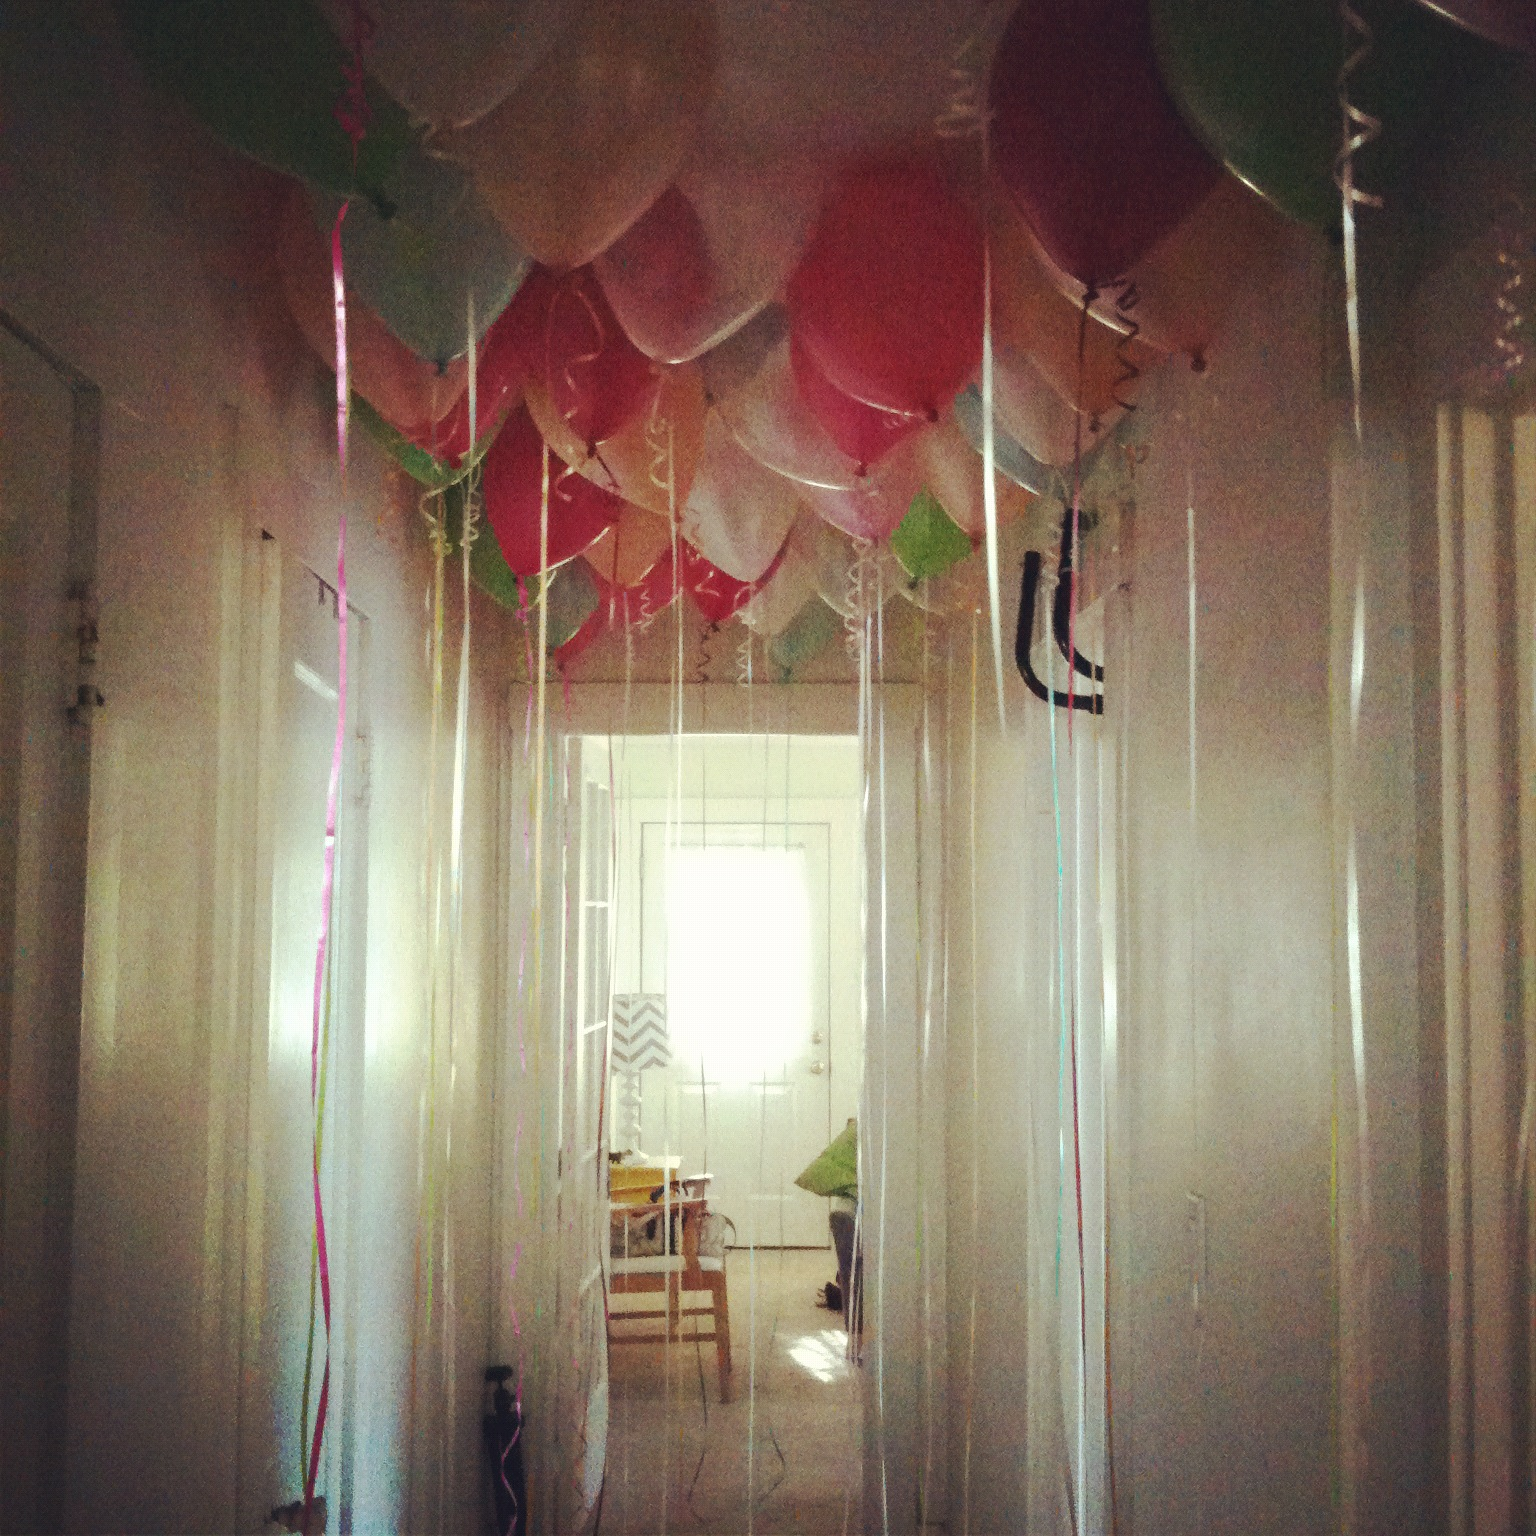 balloon filled hallway